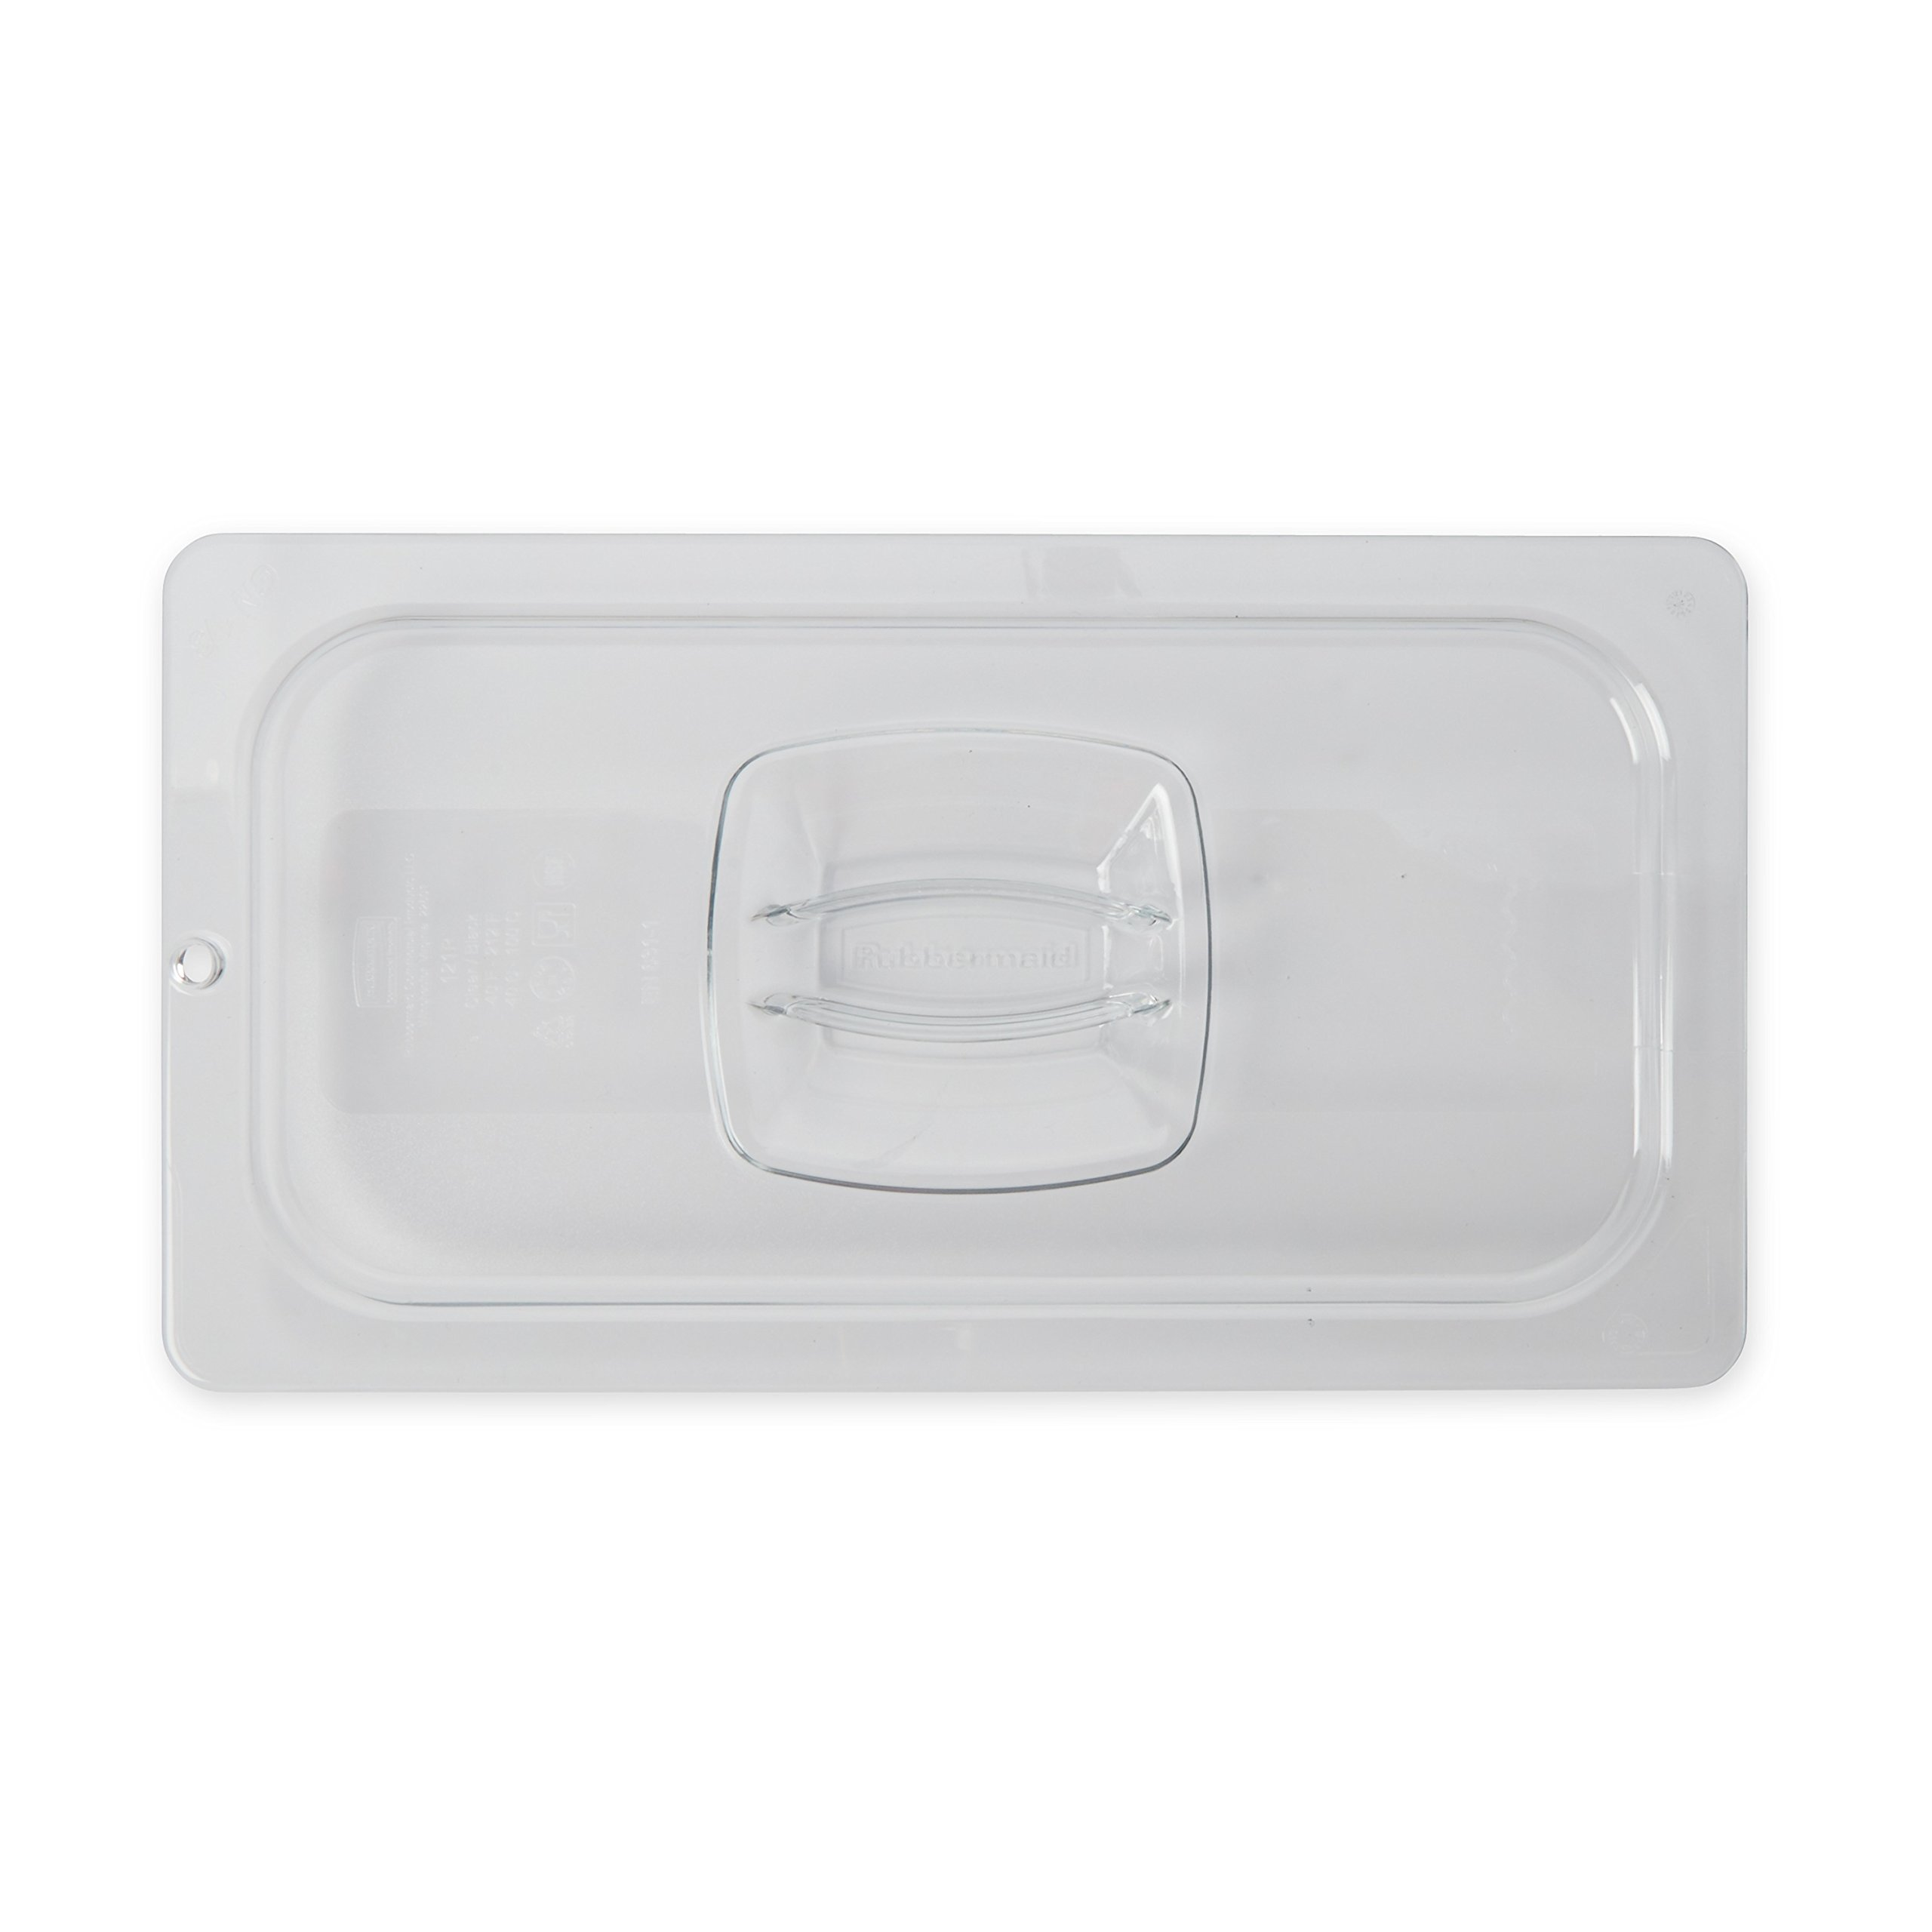 Rubbermaid Commercial 1/3 Size Cold Food Pan Cover with Peg Hole, Clear, FG121P23CLR